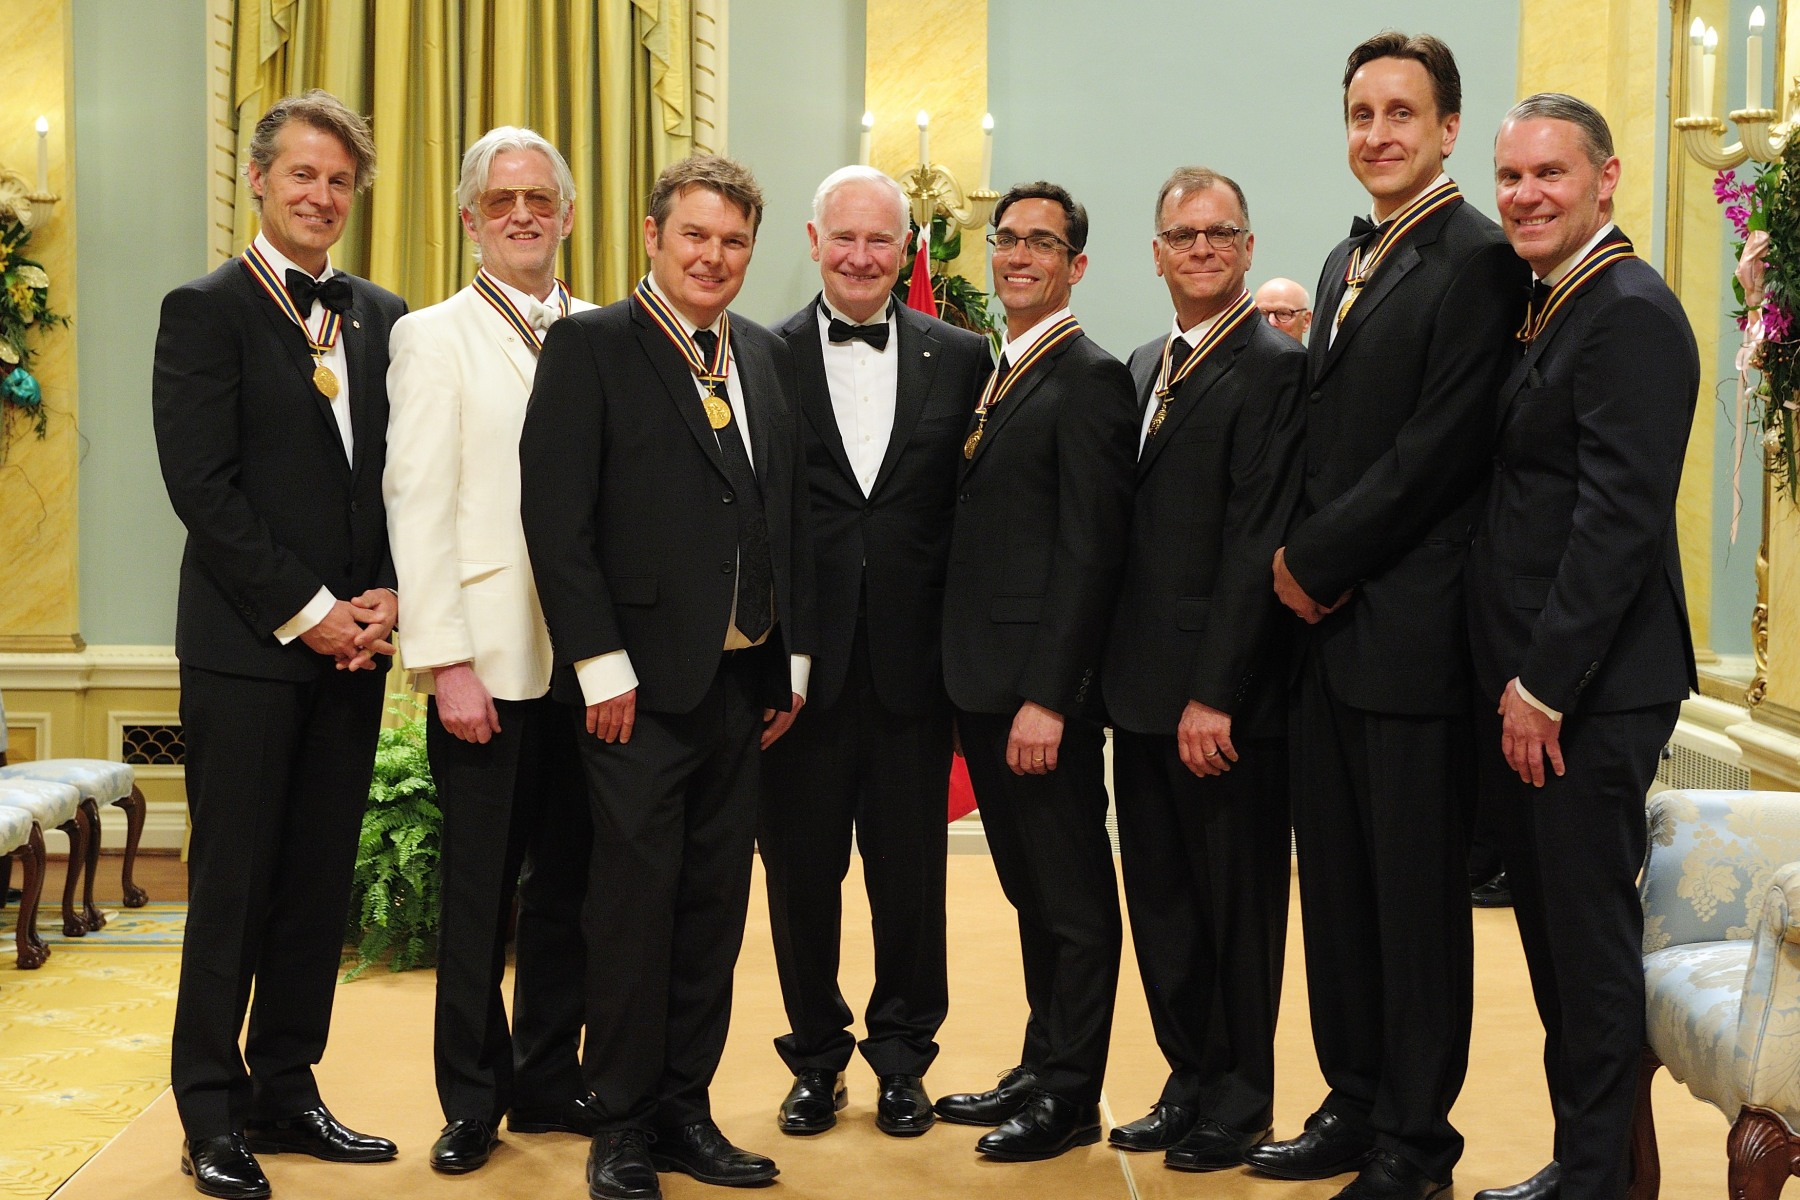 The rock band Blue Rodeo received a GGPAA for Lifetime Artistic Achievement Award.